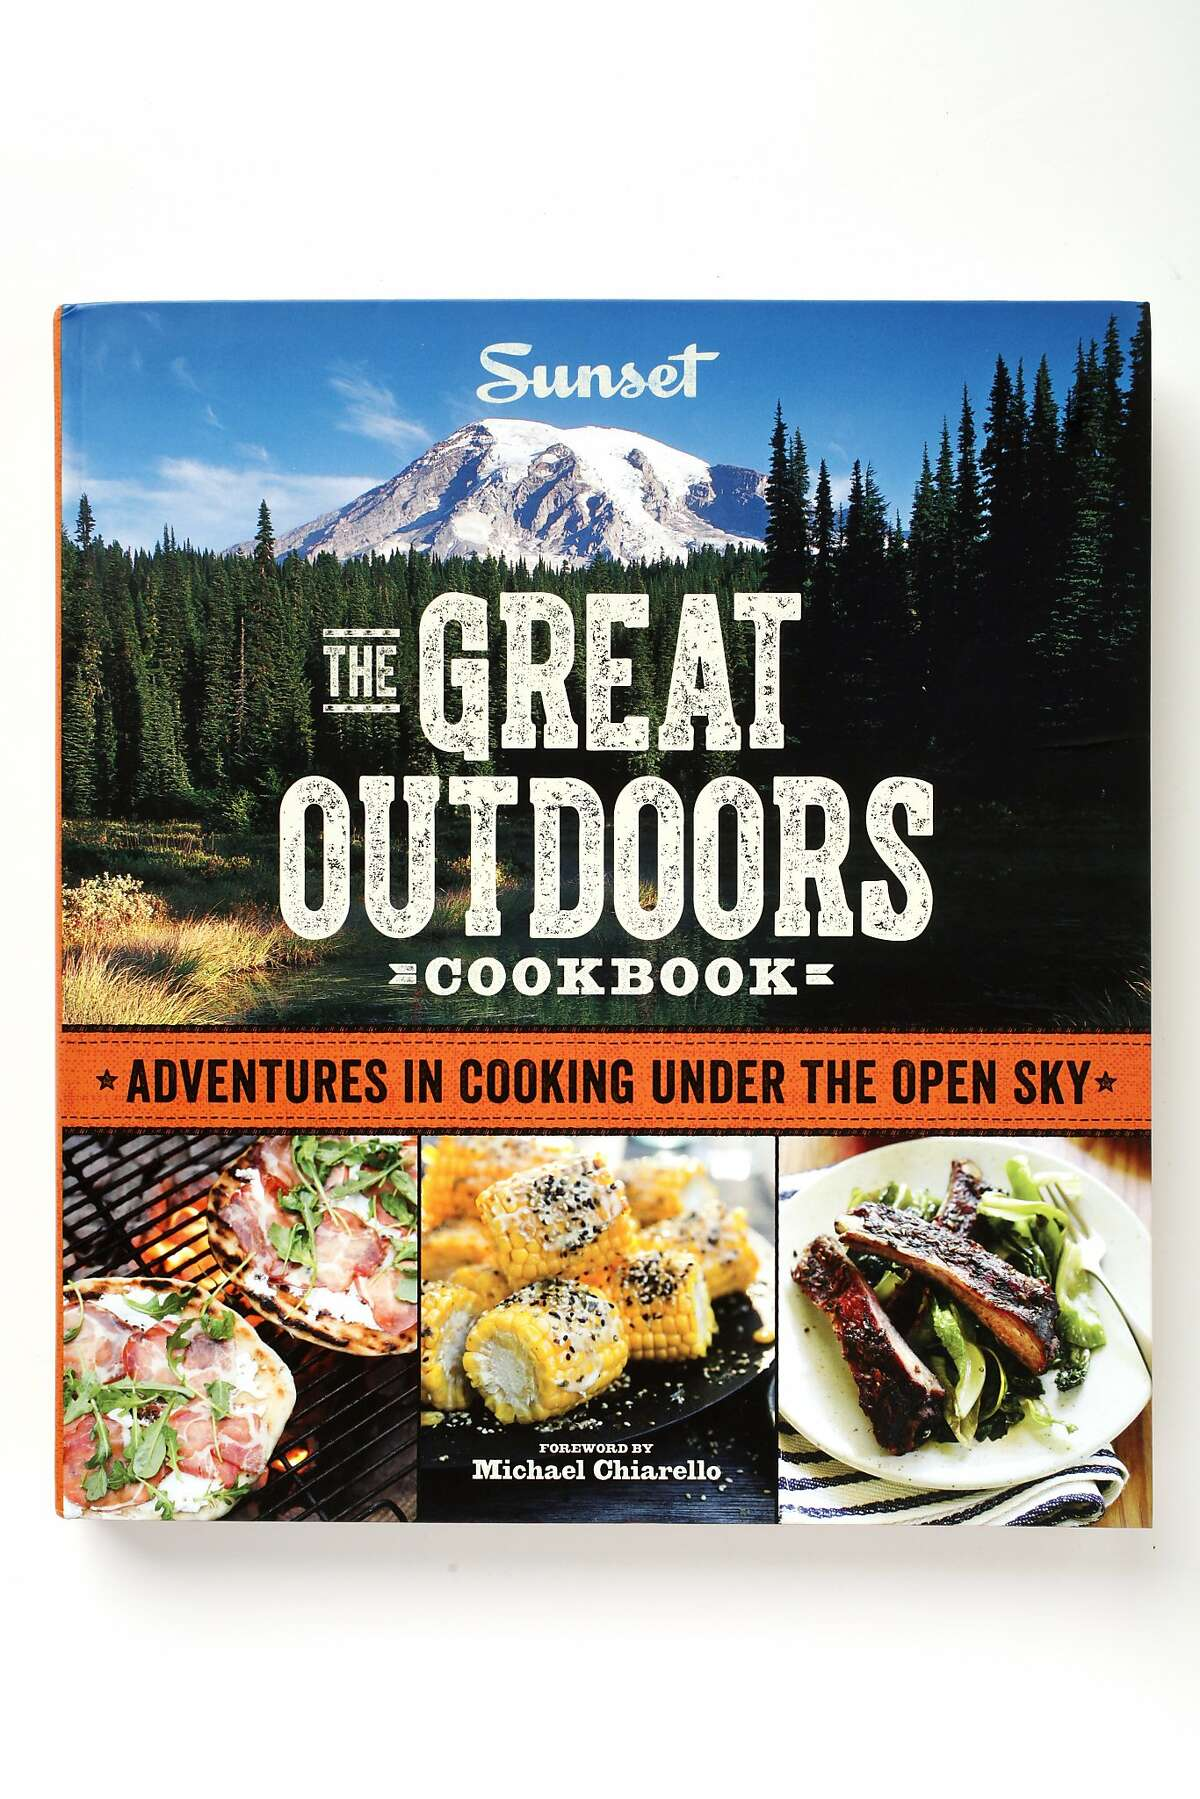 """""""The Great Outdoors Cookbook"""" by Sunset as seen in San Francisco, California, on May 7, 2014."""